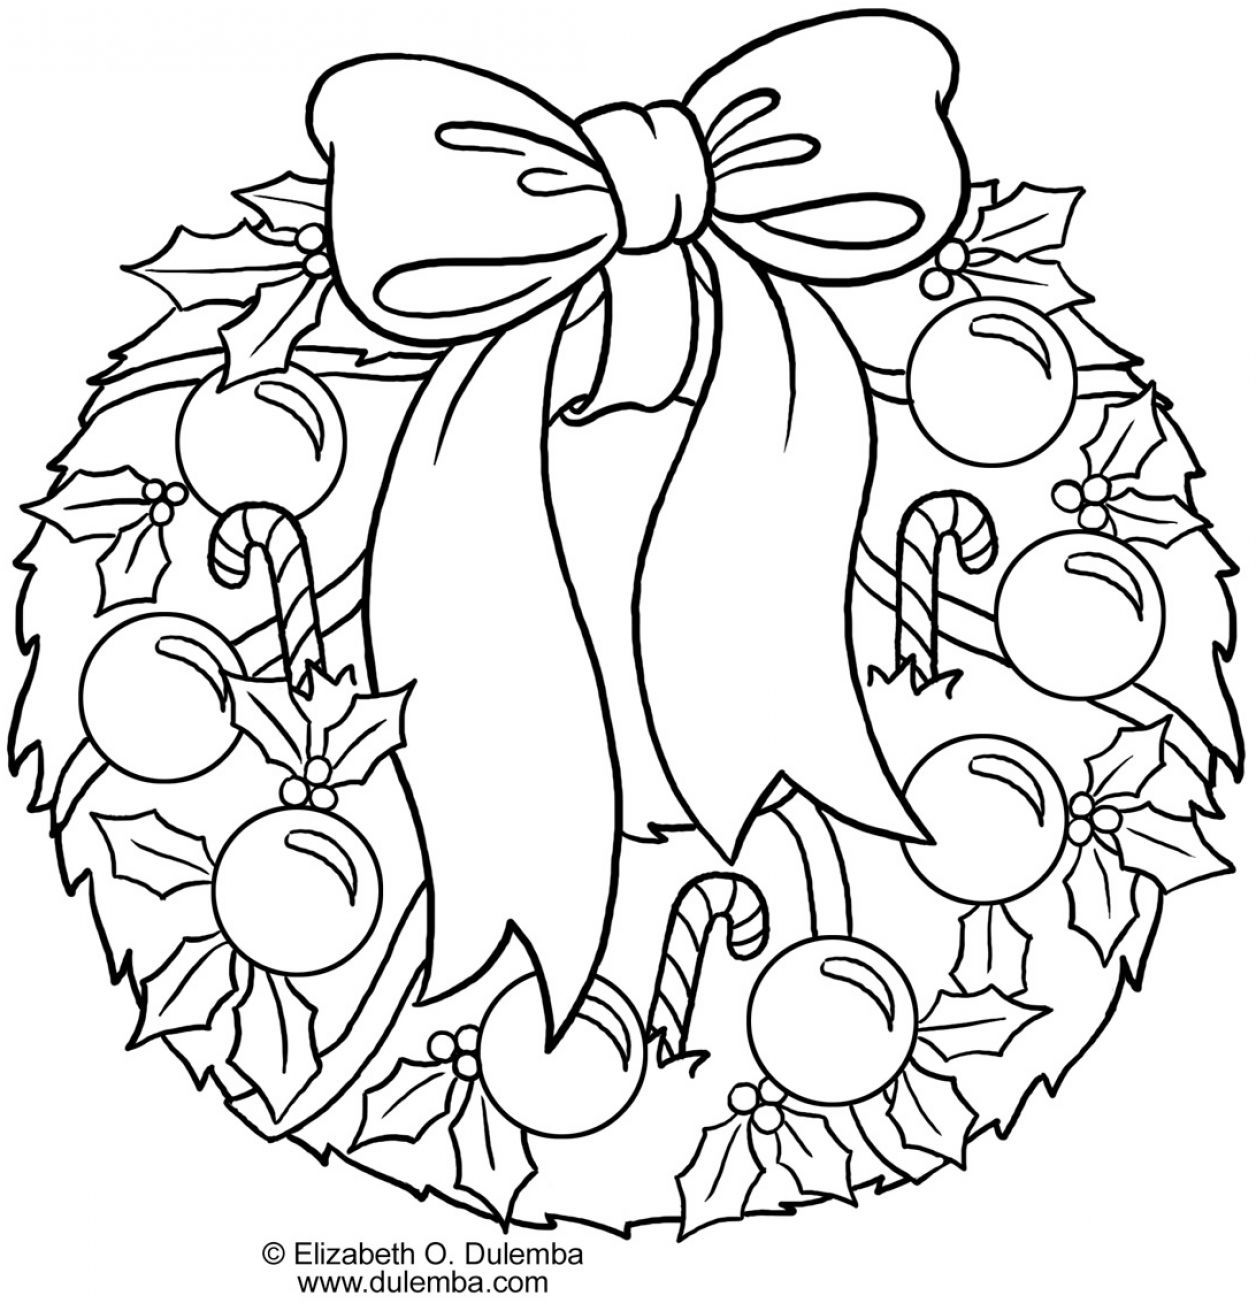 Collect Christmas Wreath Coloring Pages Getcoloringpages